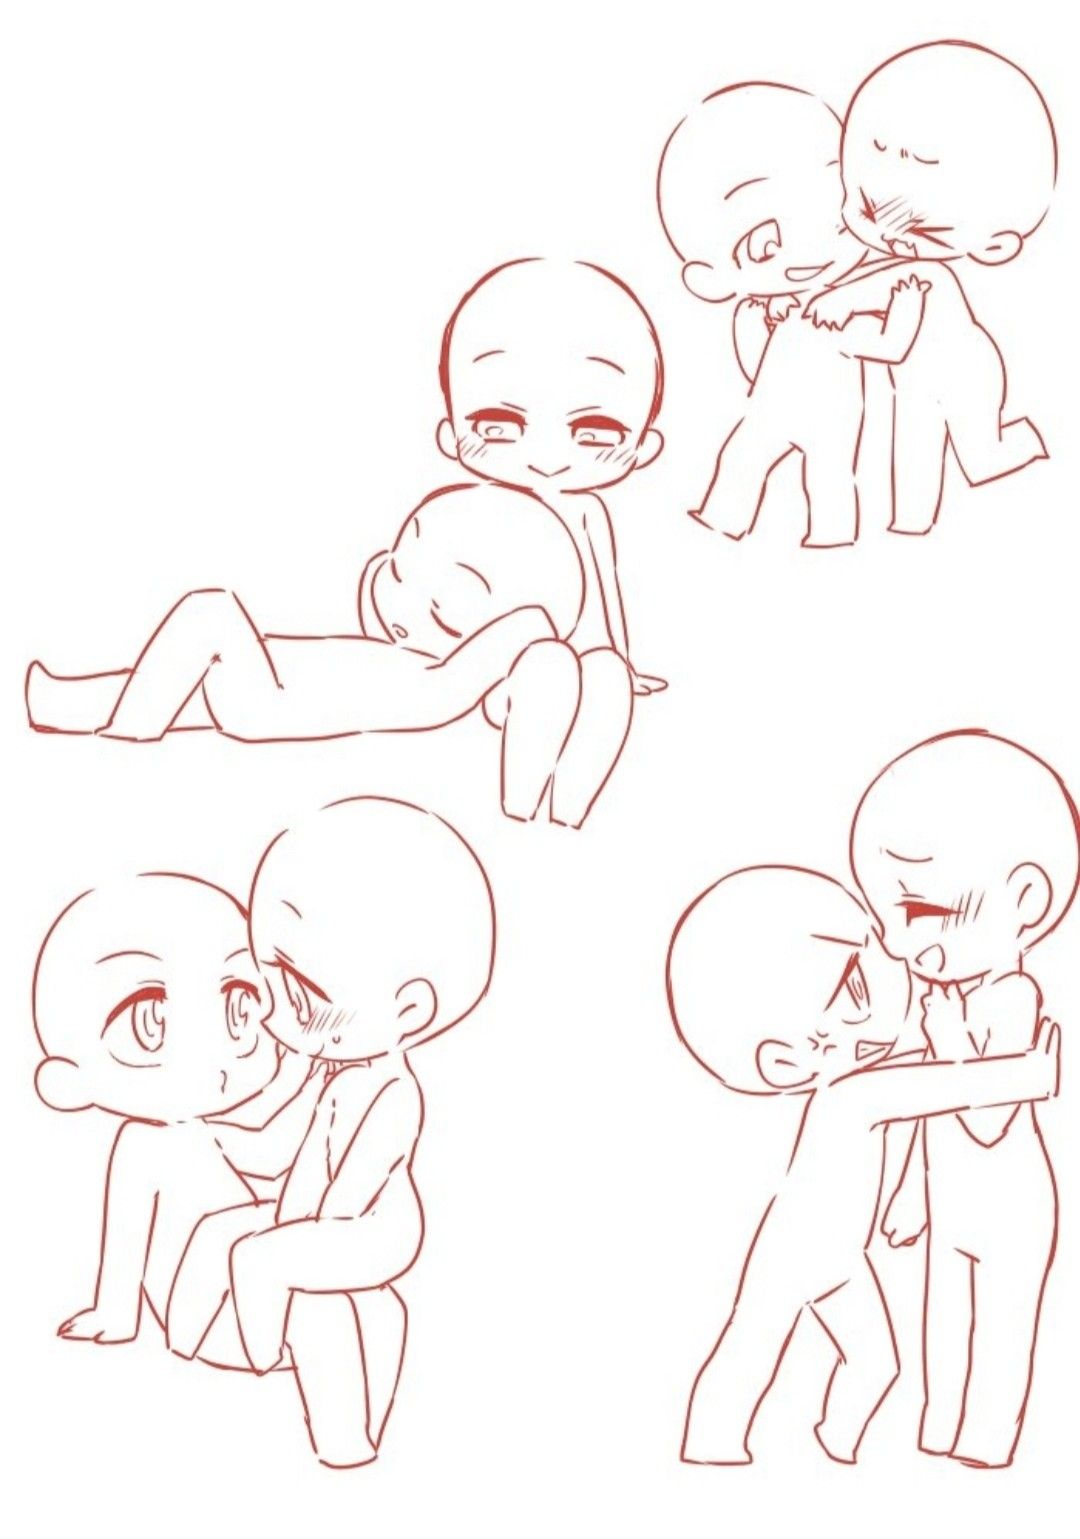 Pin by Alexia valeska on позы in 2020 Anime poses